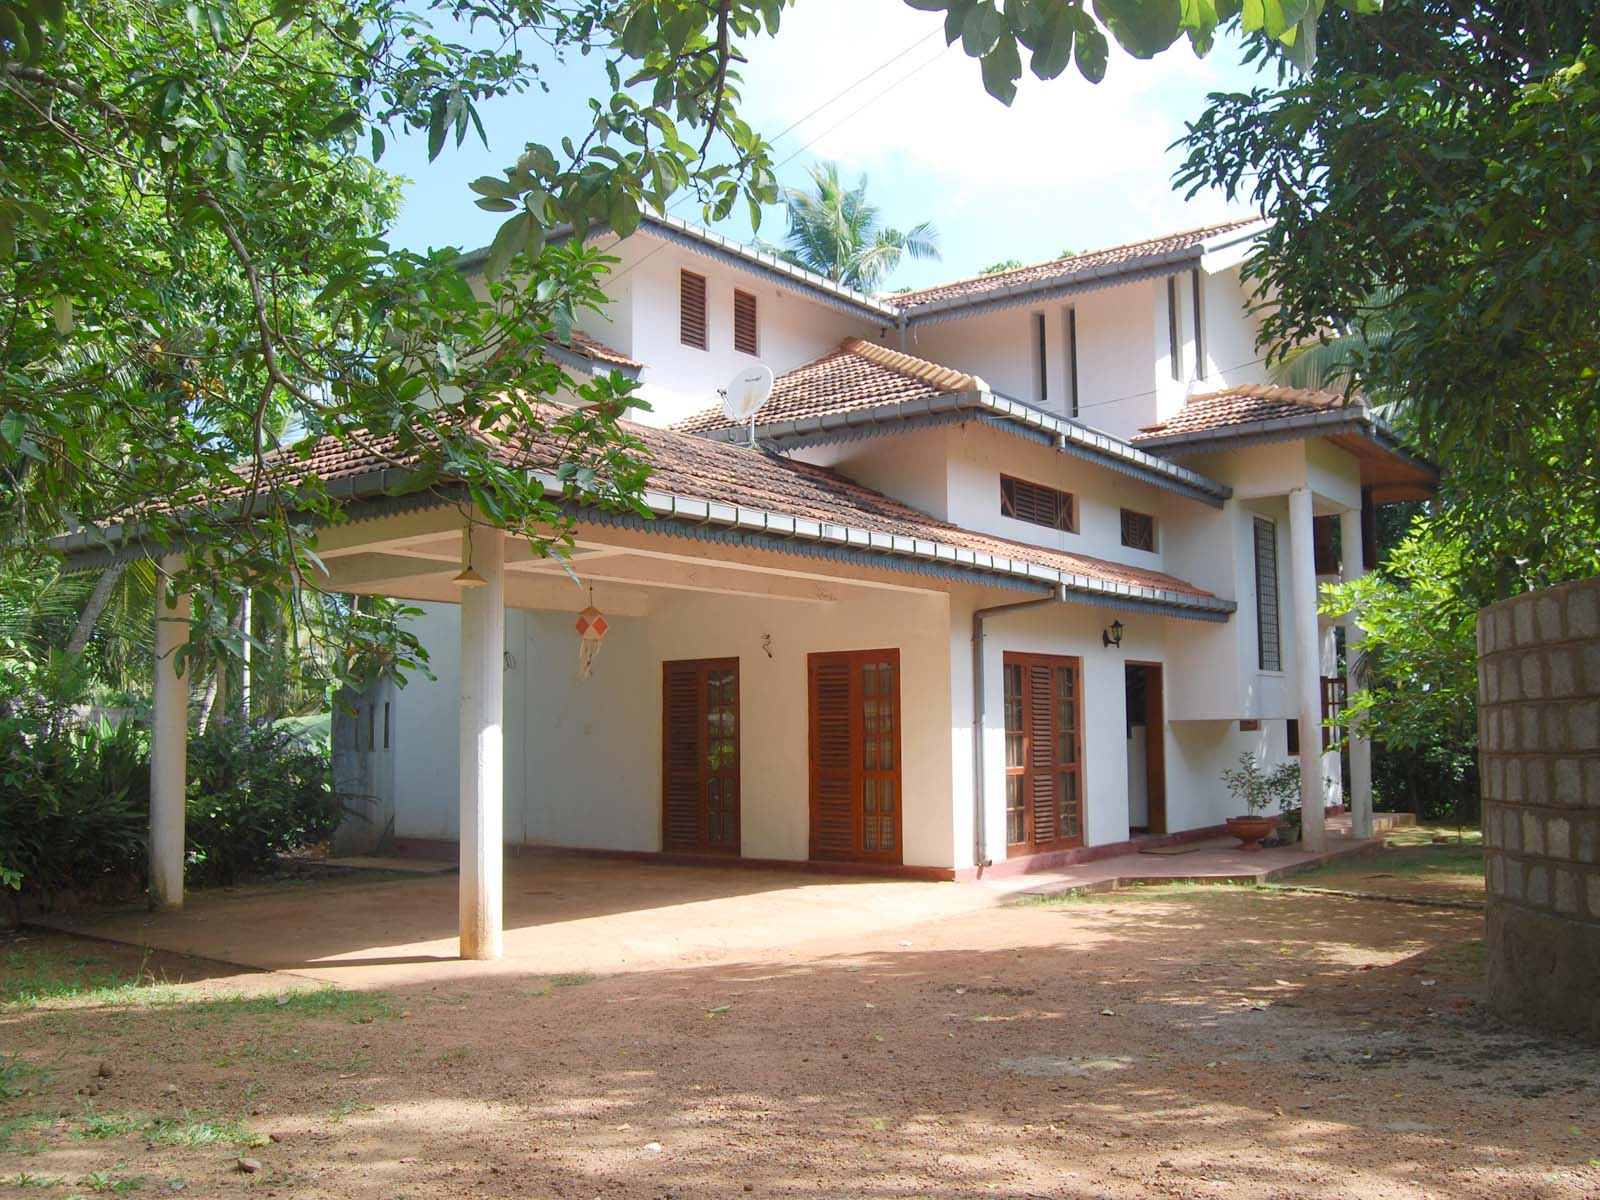 Sri lanka as well small barn homes house further sri lanka home design